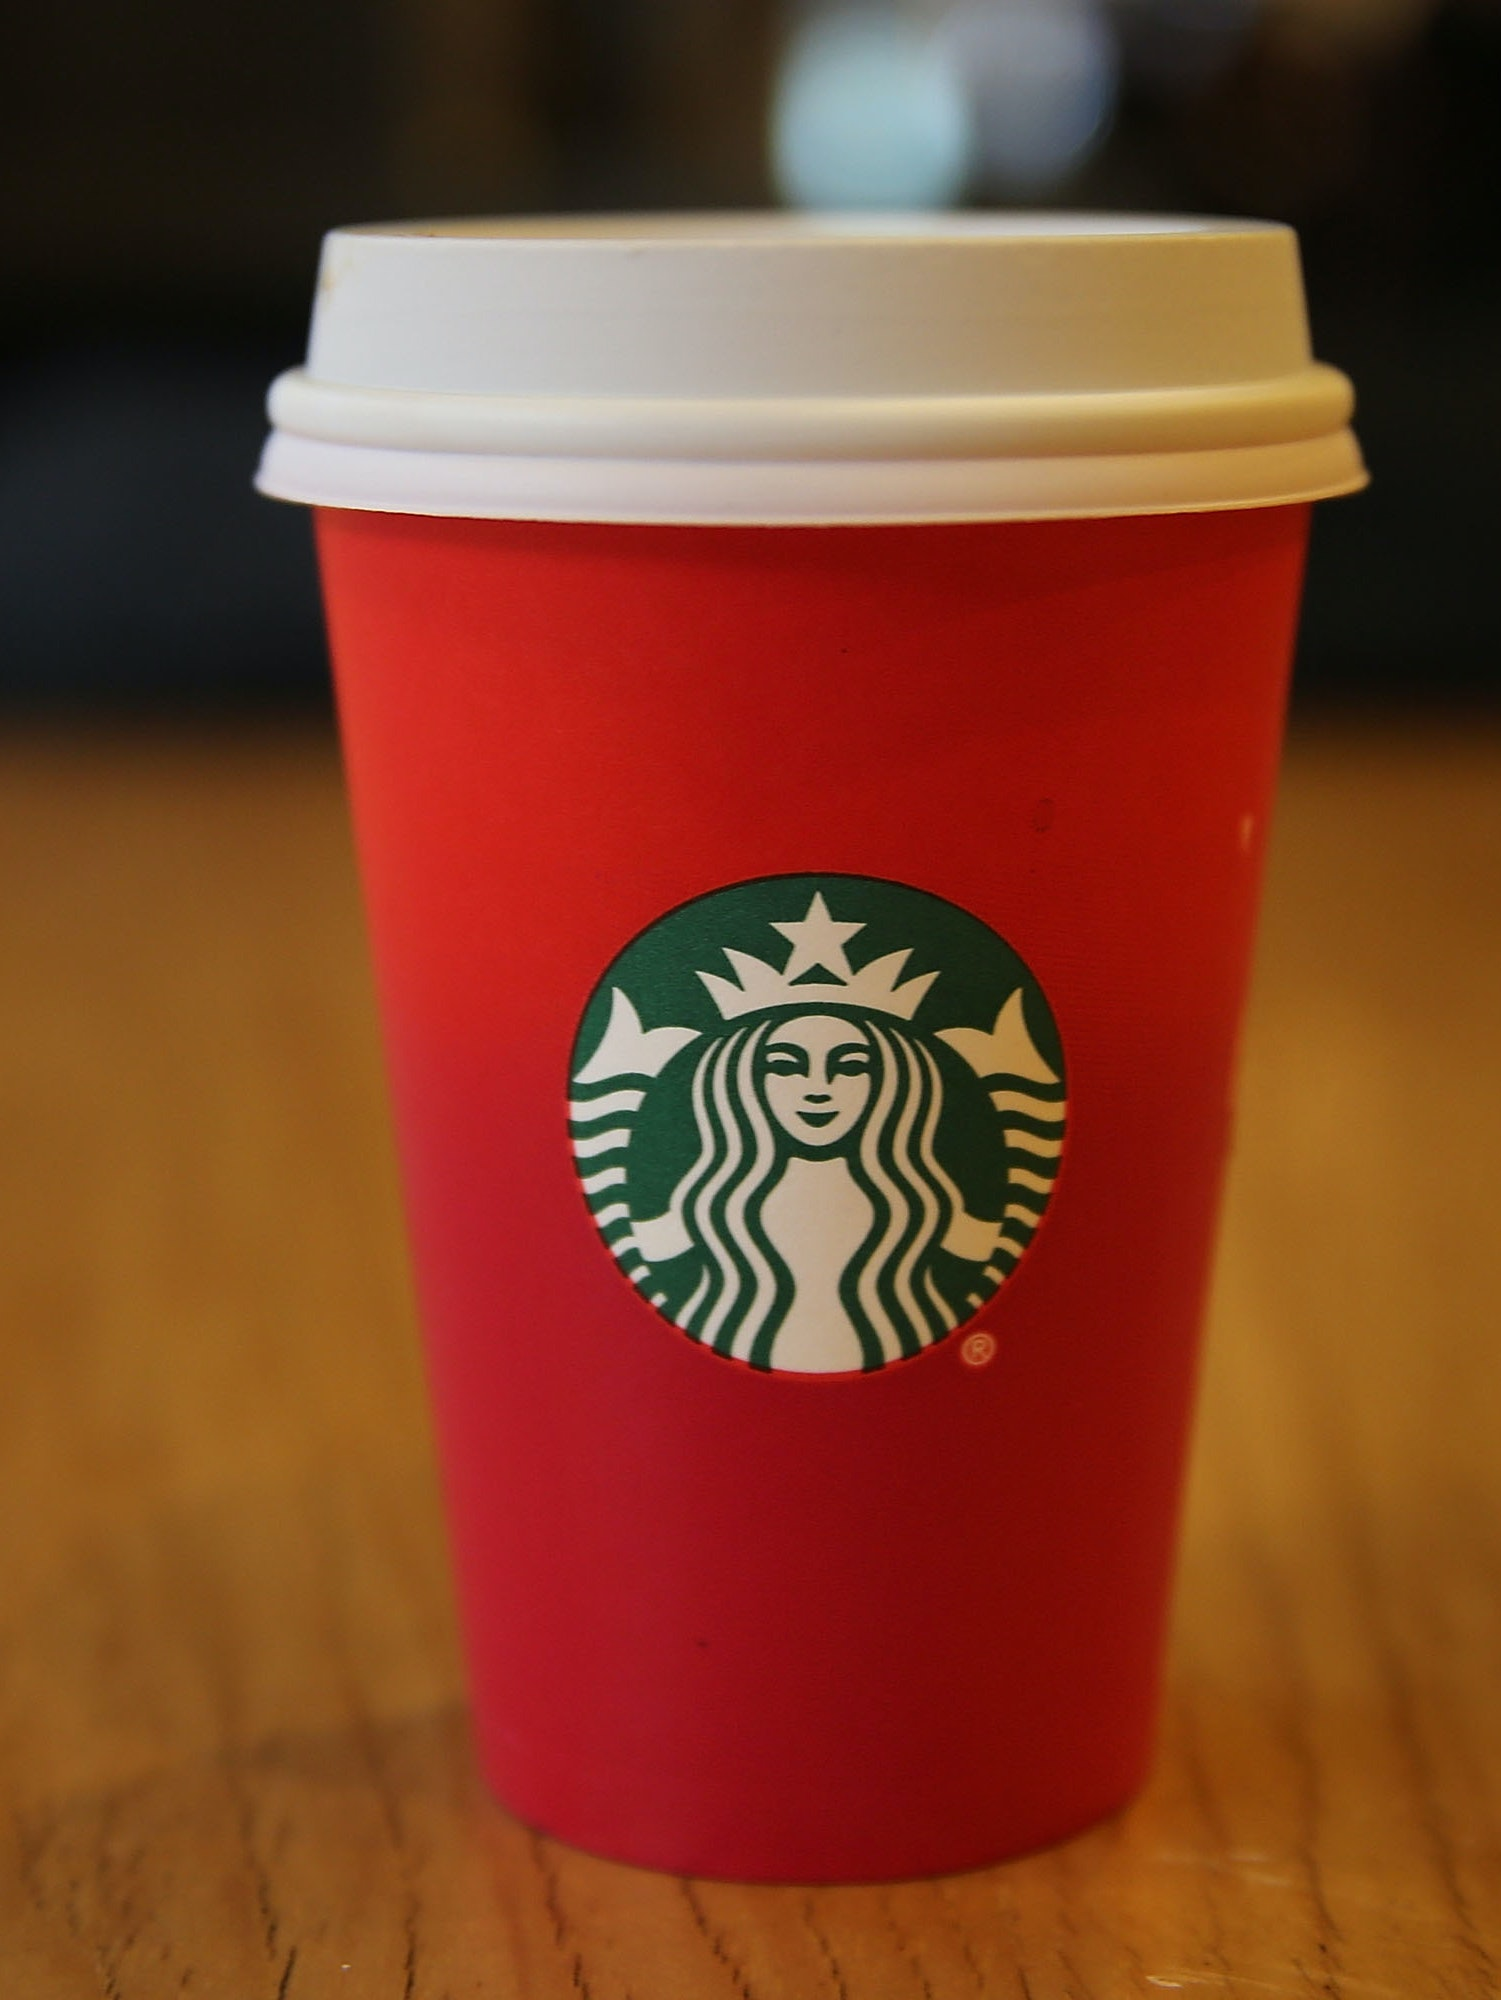 NEW YORK, NY - NOVEMBER 12: A new holiday Starbucks cup is viewed on November 12, 2015 in New York City. The coffee giant has come under criticism by some for leaving any Christmas or traditional holiday signage off of the red cup. While Starbucks has said there is no cultural or political message to the design, critics claim that the company doesn't want to offend non-Christians or those who don't celebrate Christmas.  (Photo by Spencer Platt/Getty Images)